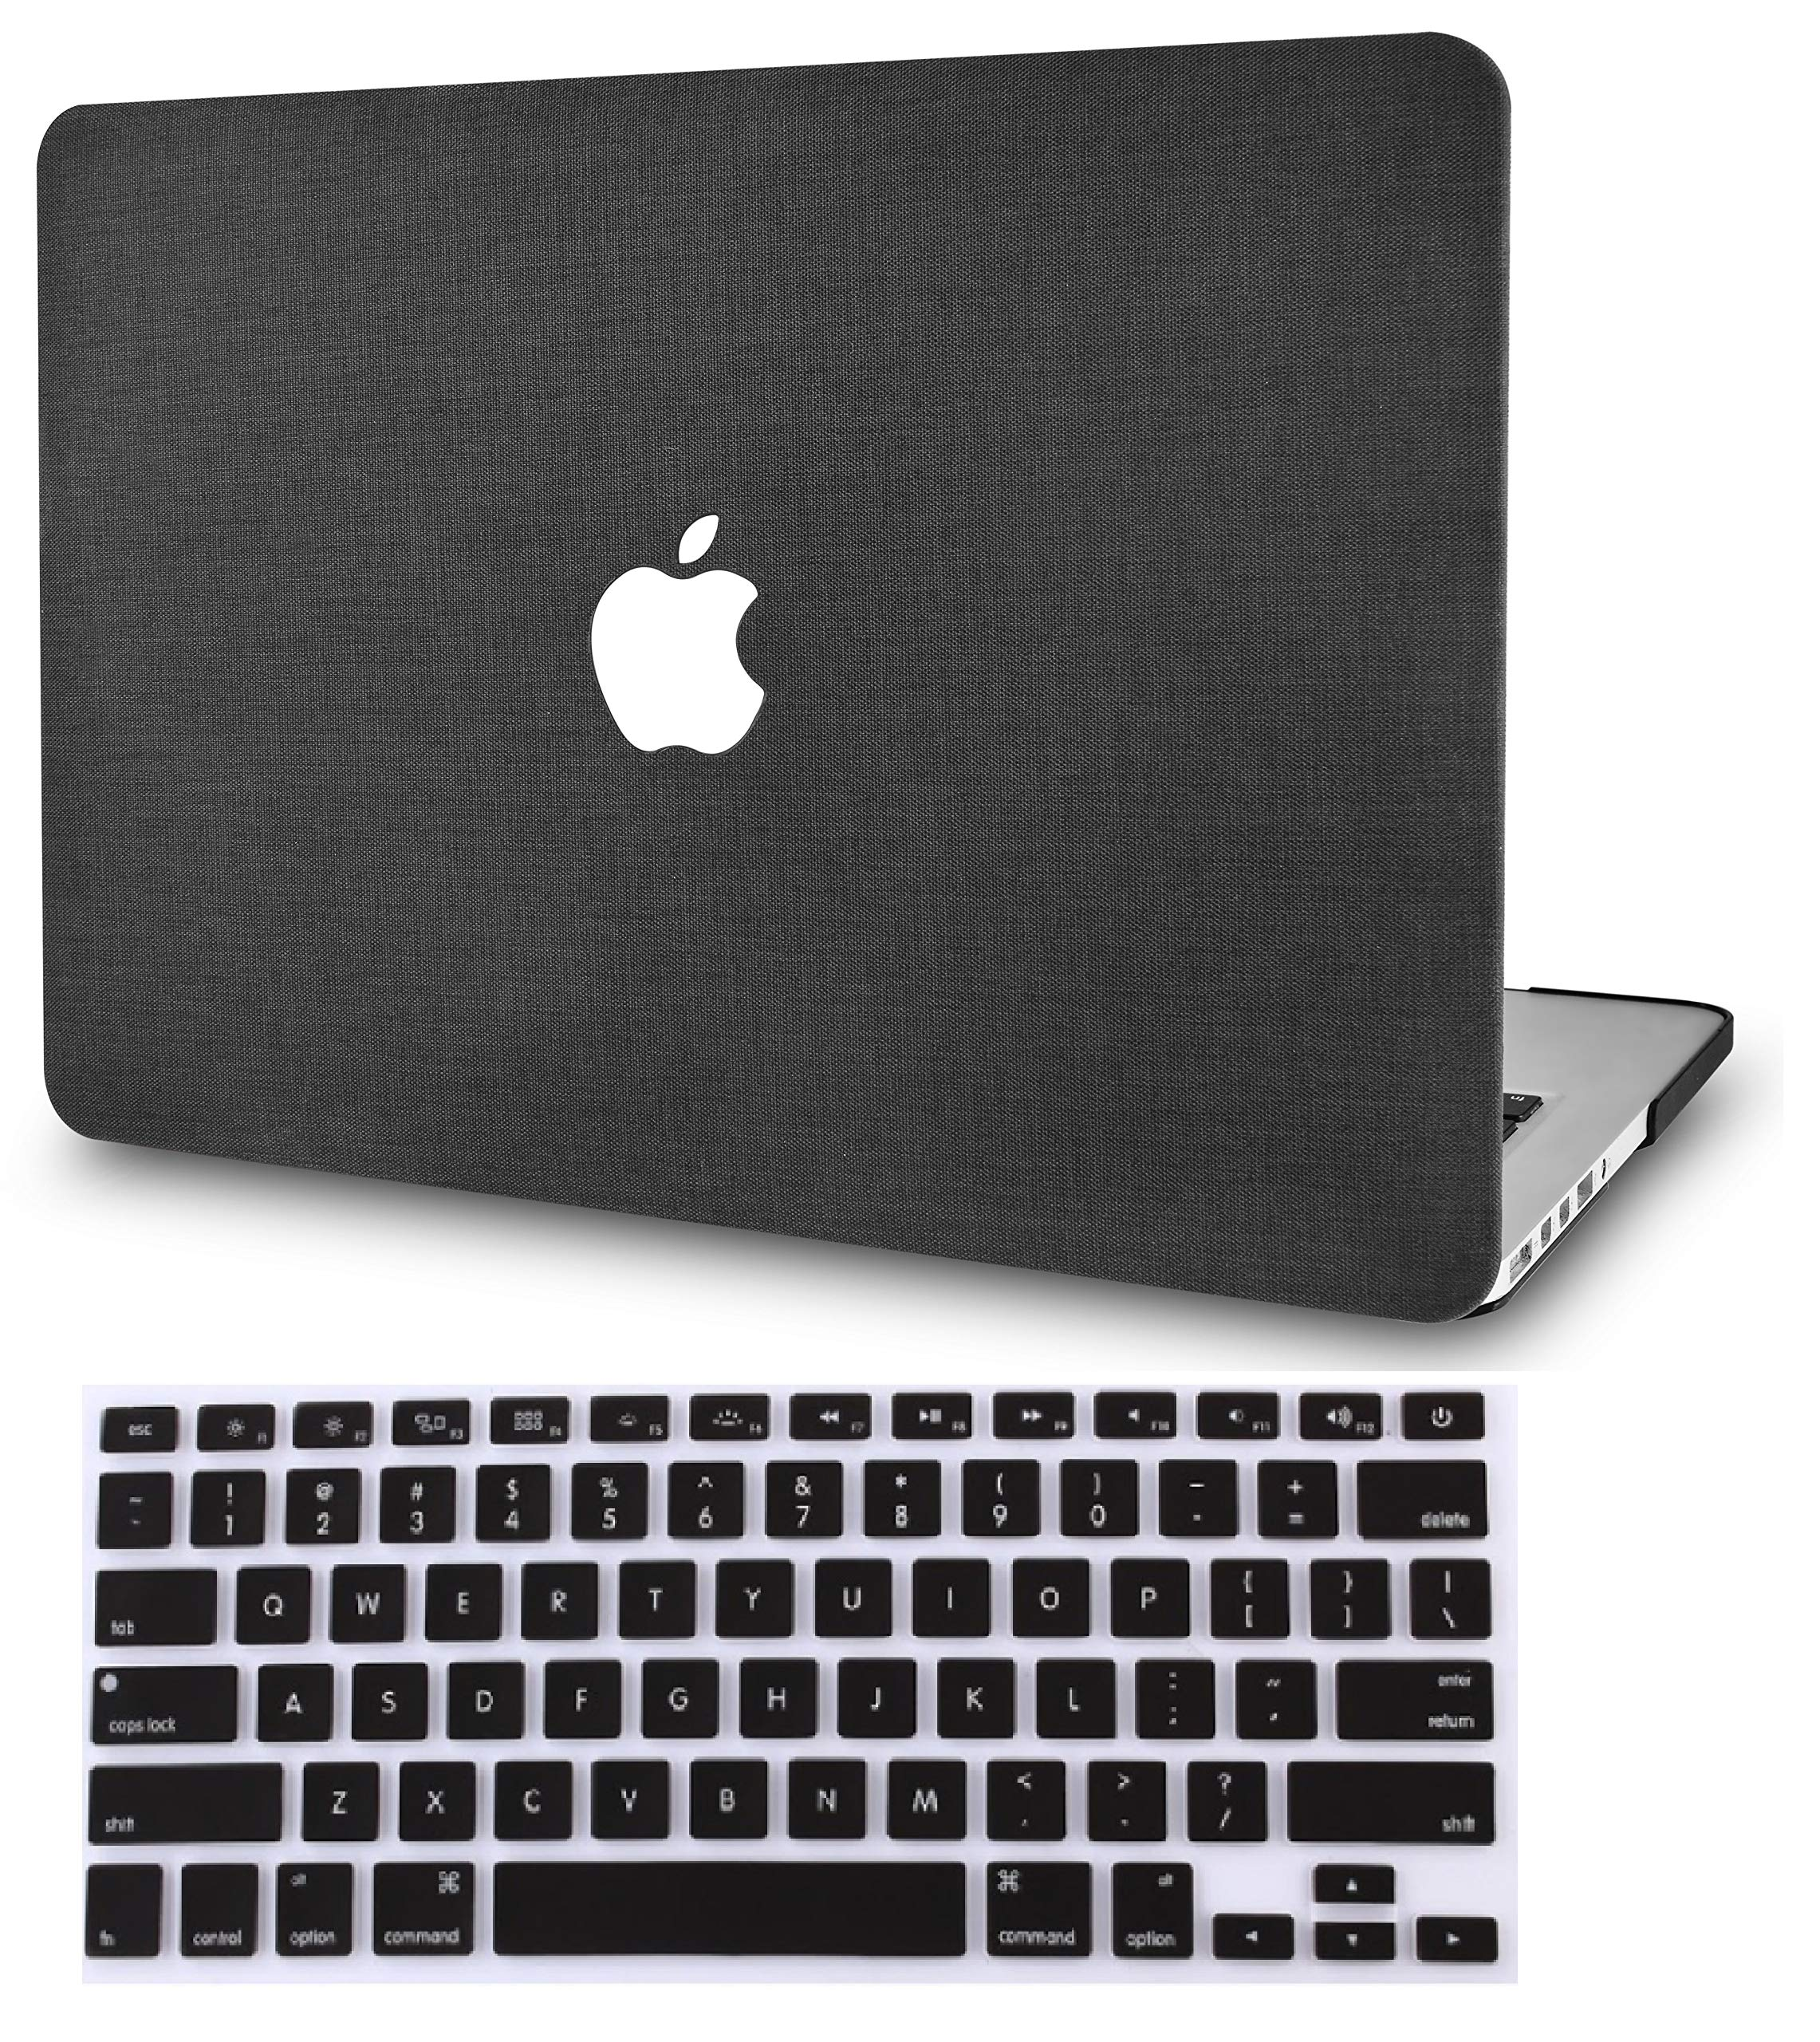 """KECC Laptop Case for MacBook Pro 13"""" (2020/2019/2018/2017/2016) w/Keyboard Cover Plastic Hard Shell A2159/A1989/A1706/A1708 Touch Bar 2 in 1 Bundle (Black Fabric)"""